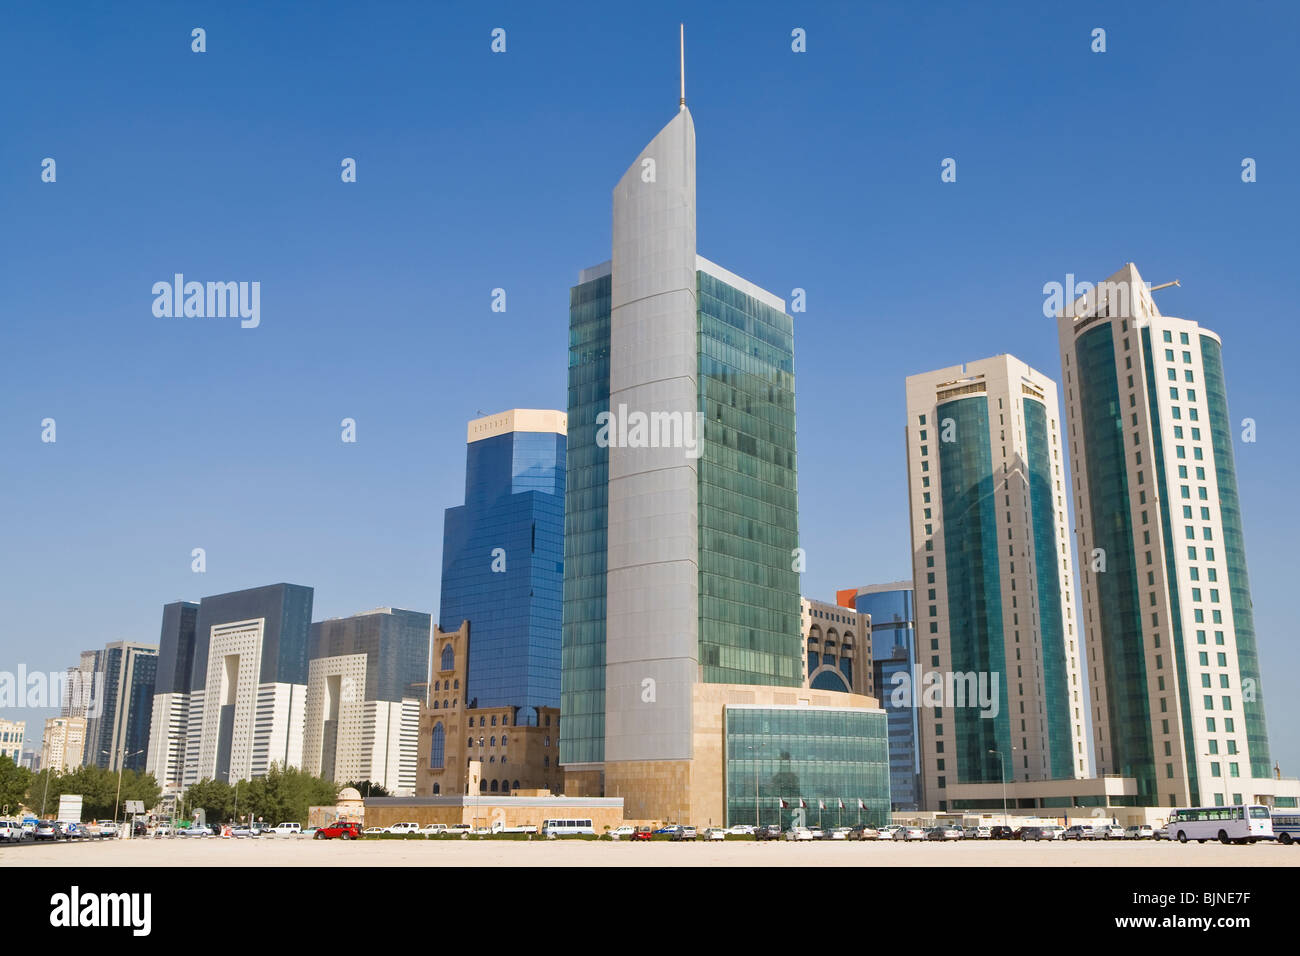 Photograph of the skyscrapers and office buildings of the Doha Financial District Skyline, Qatar - Stock Image